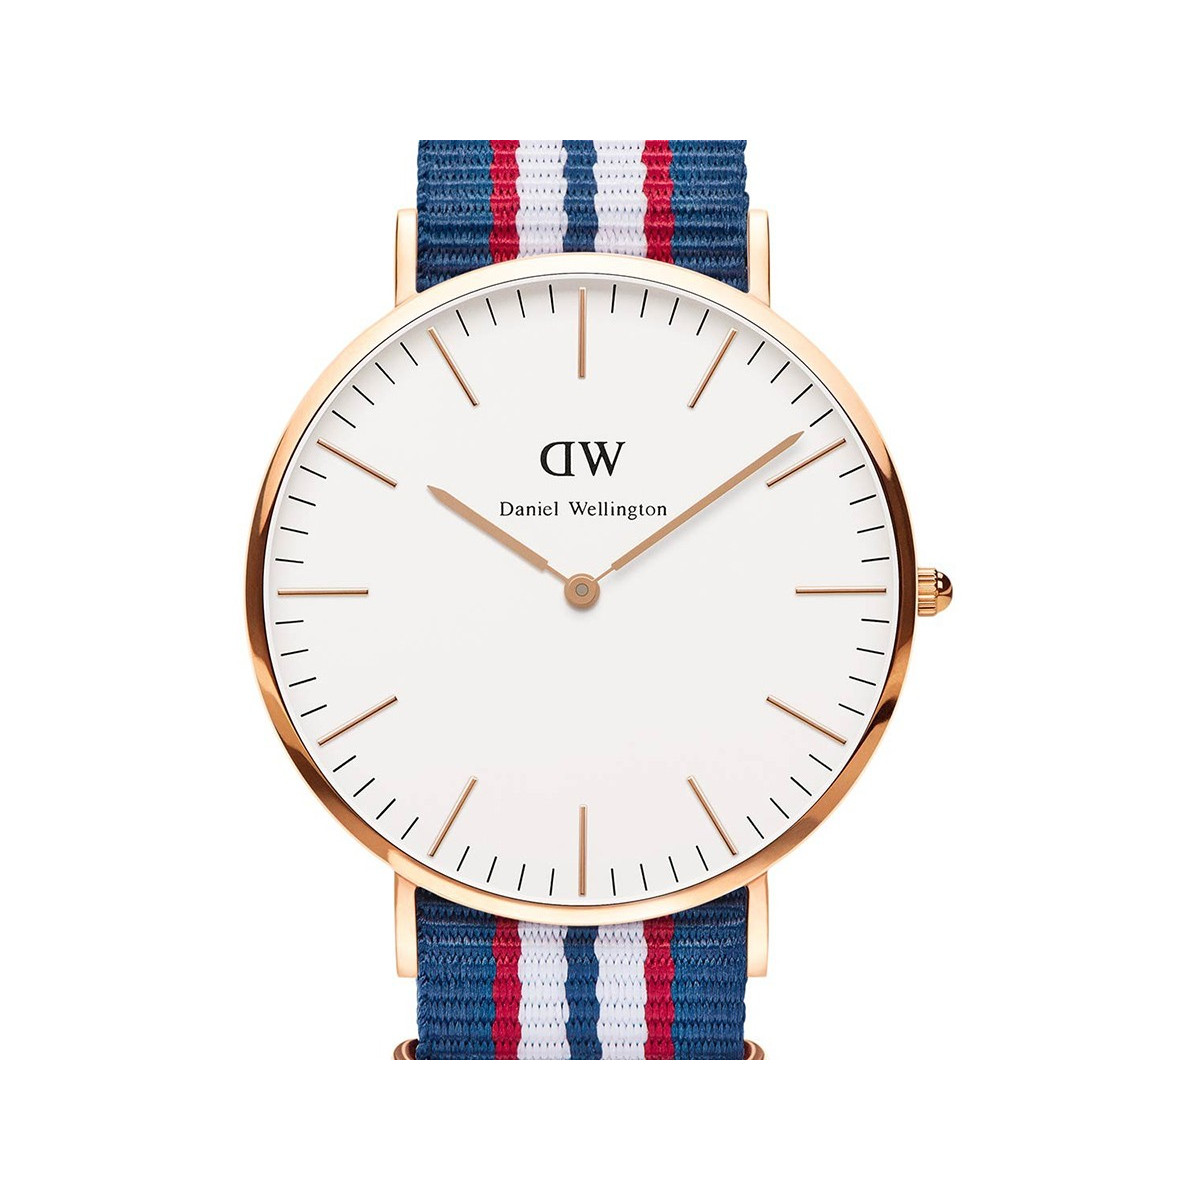 combien coute une montre daniel wellington. Black Bedroom Furniture Sets. Home Design Ideas